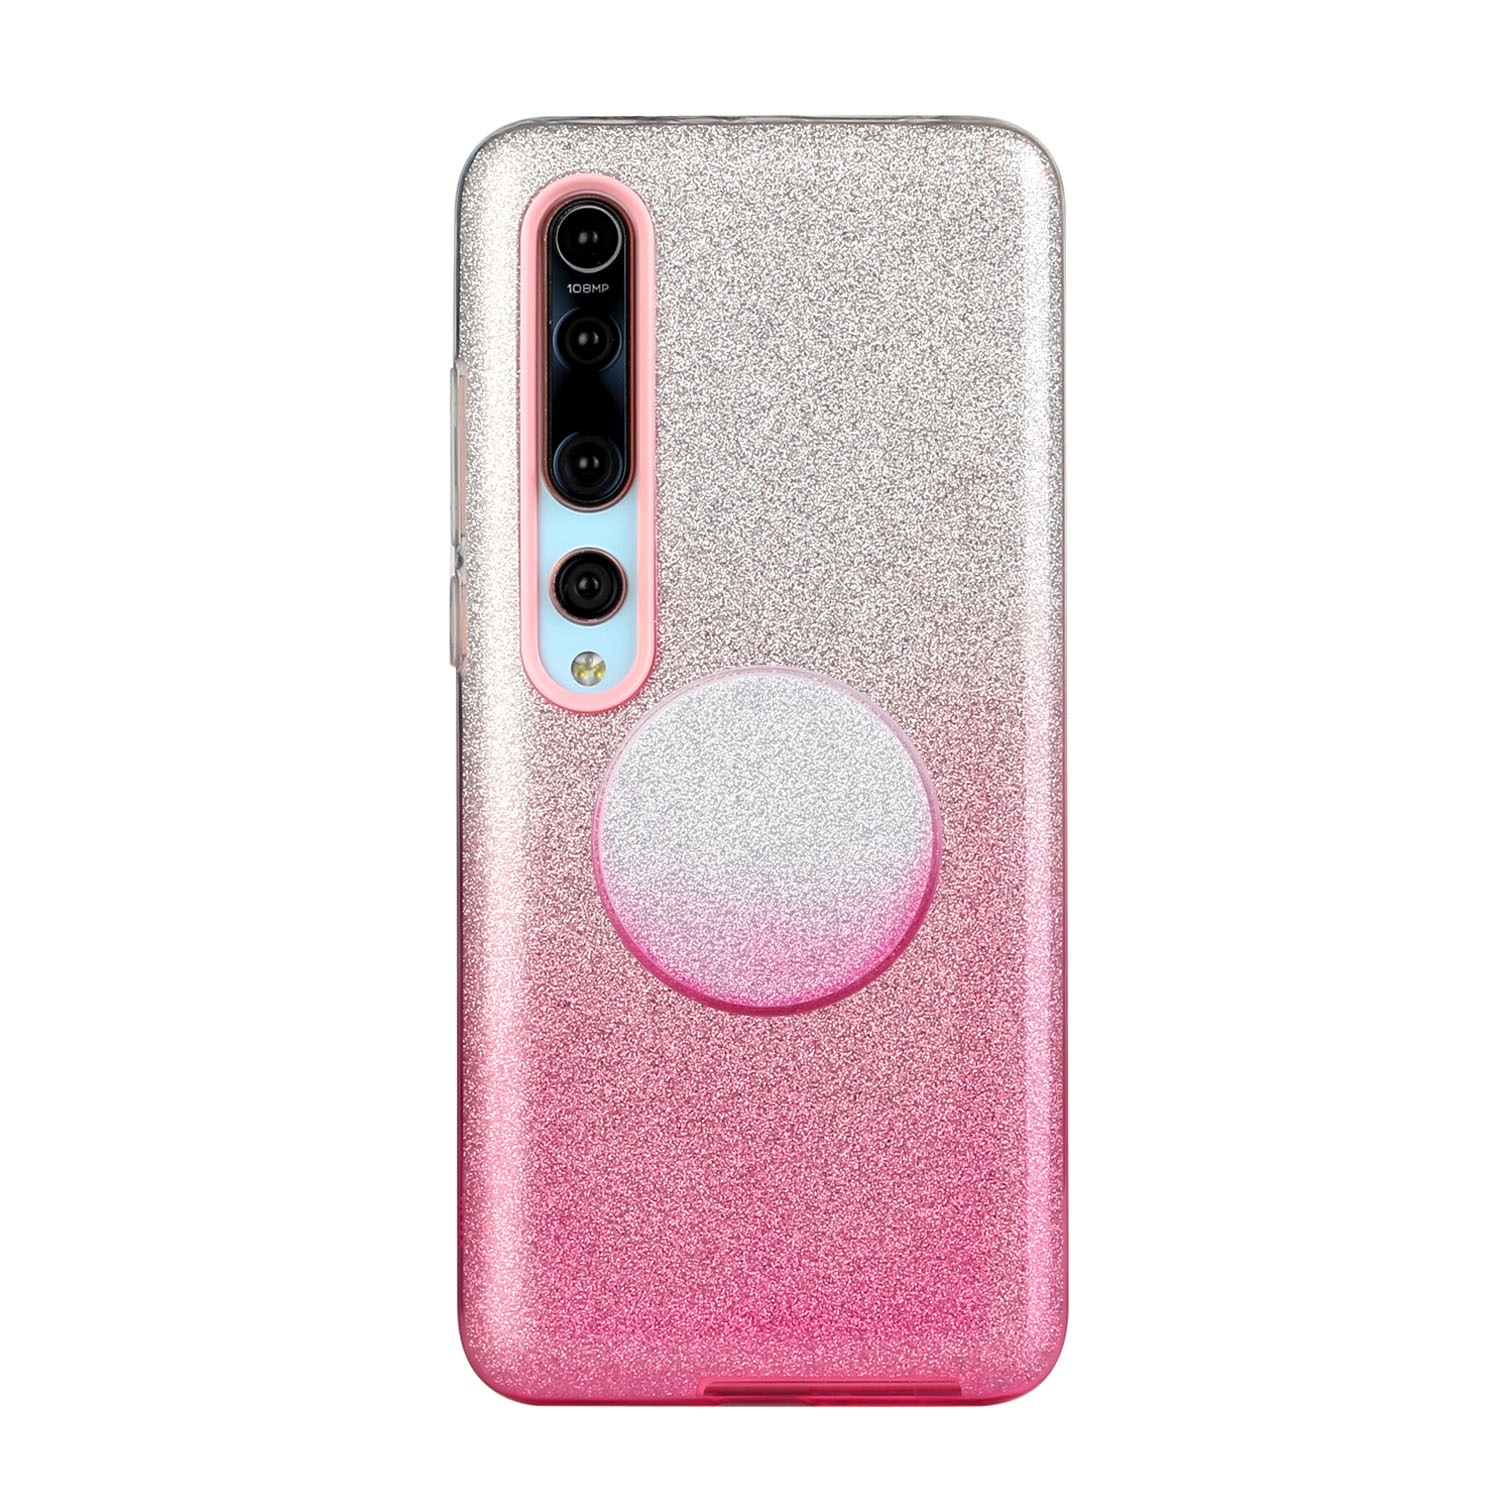 For XIAOMI CC9E/A3/10/10 PRO/K20/K20 pro Phone Case Gradient Color Glitter Powder Phone Cover with Airbag Bracket Pink